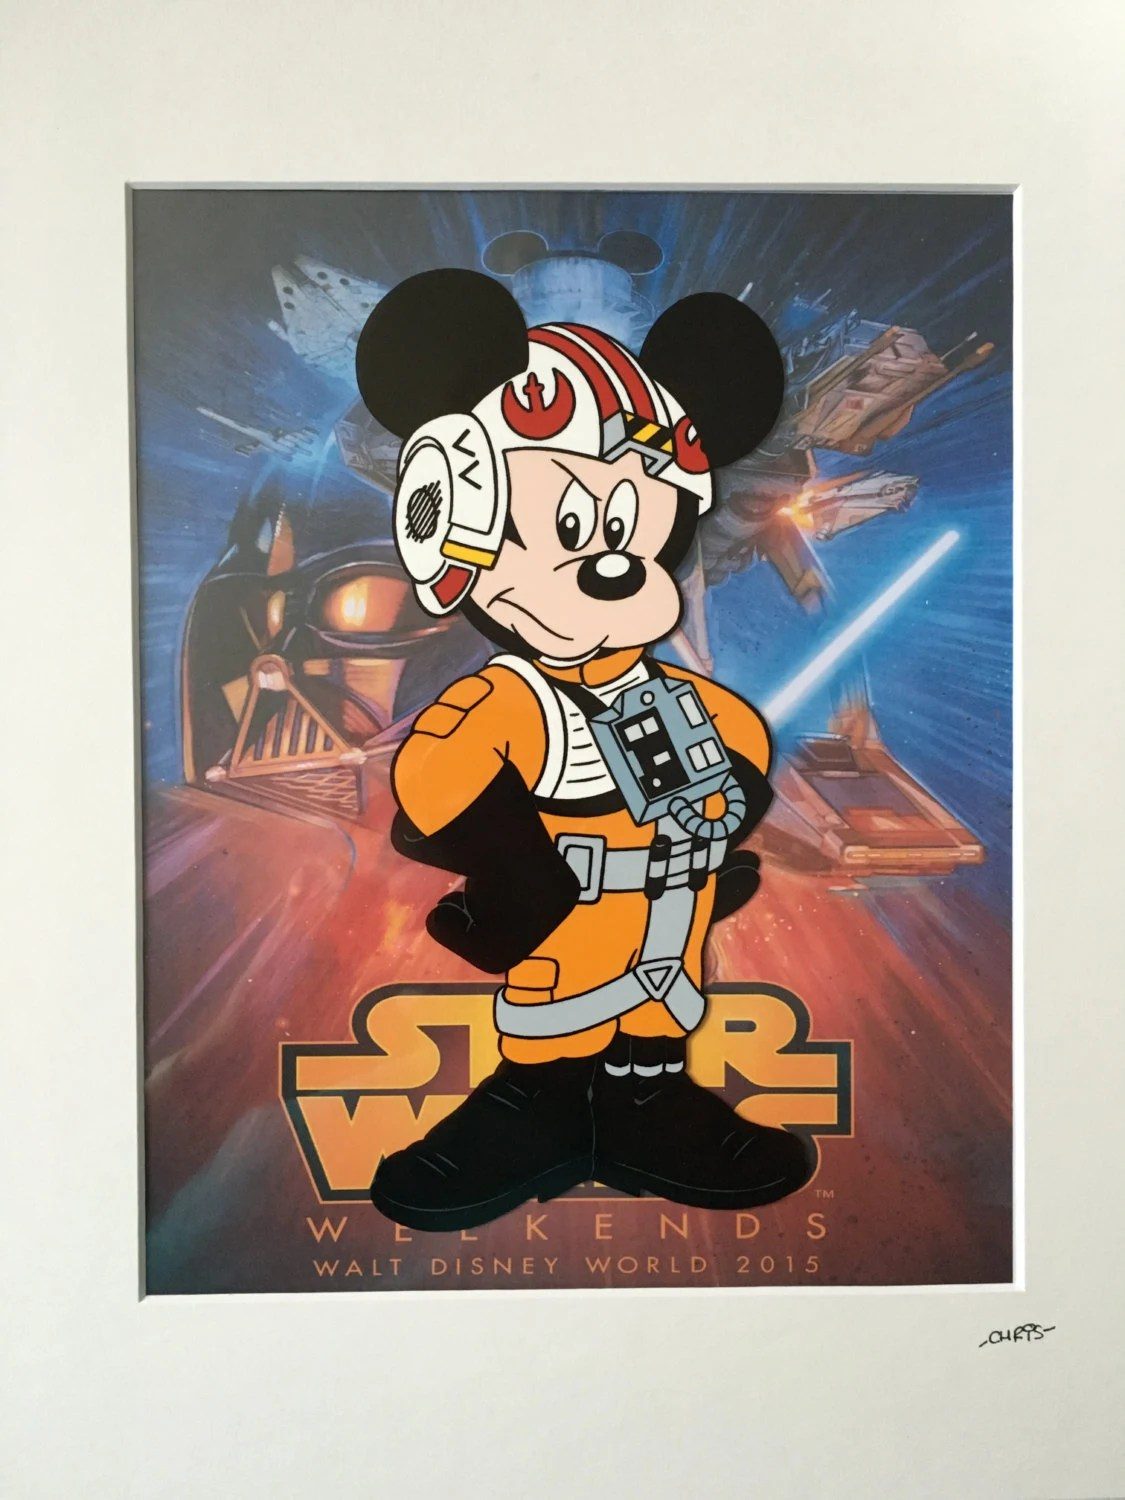 Star Mickey Mouse Disney Wars